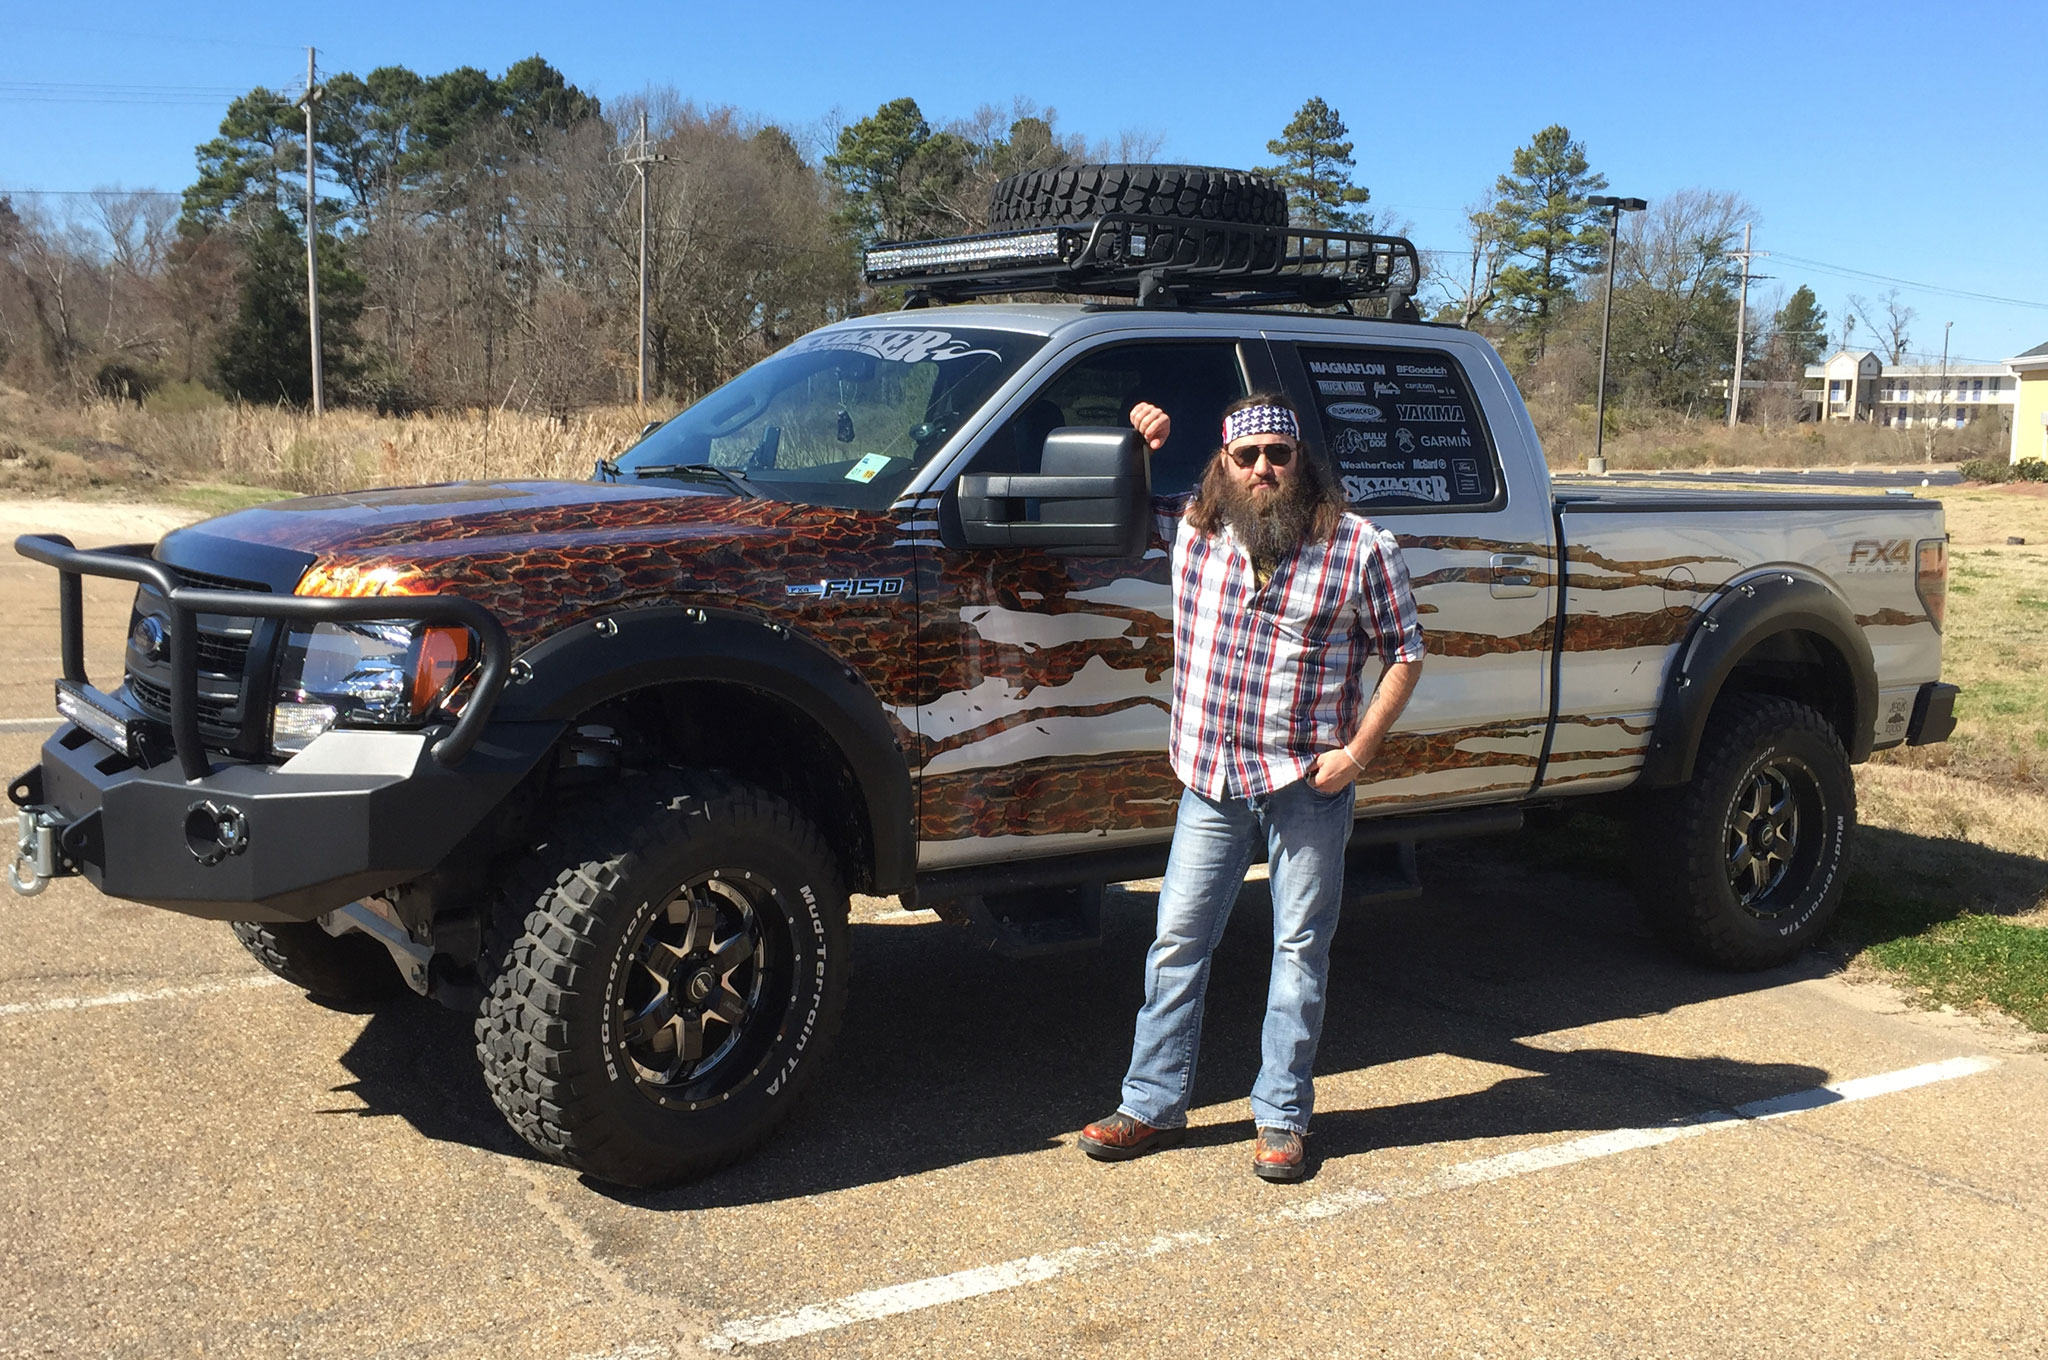 Celebrity Drive: 'Duck Dynasty' Star Willie Robertson - MotorTrend on dynasty modular homes, top gear mobile homes, duck commander mobile homes, sherlock mobile homes,